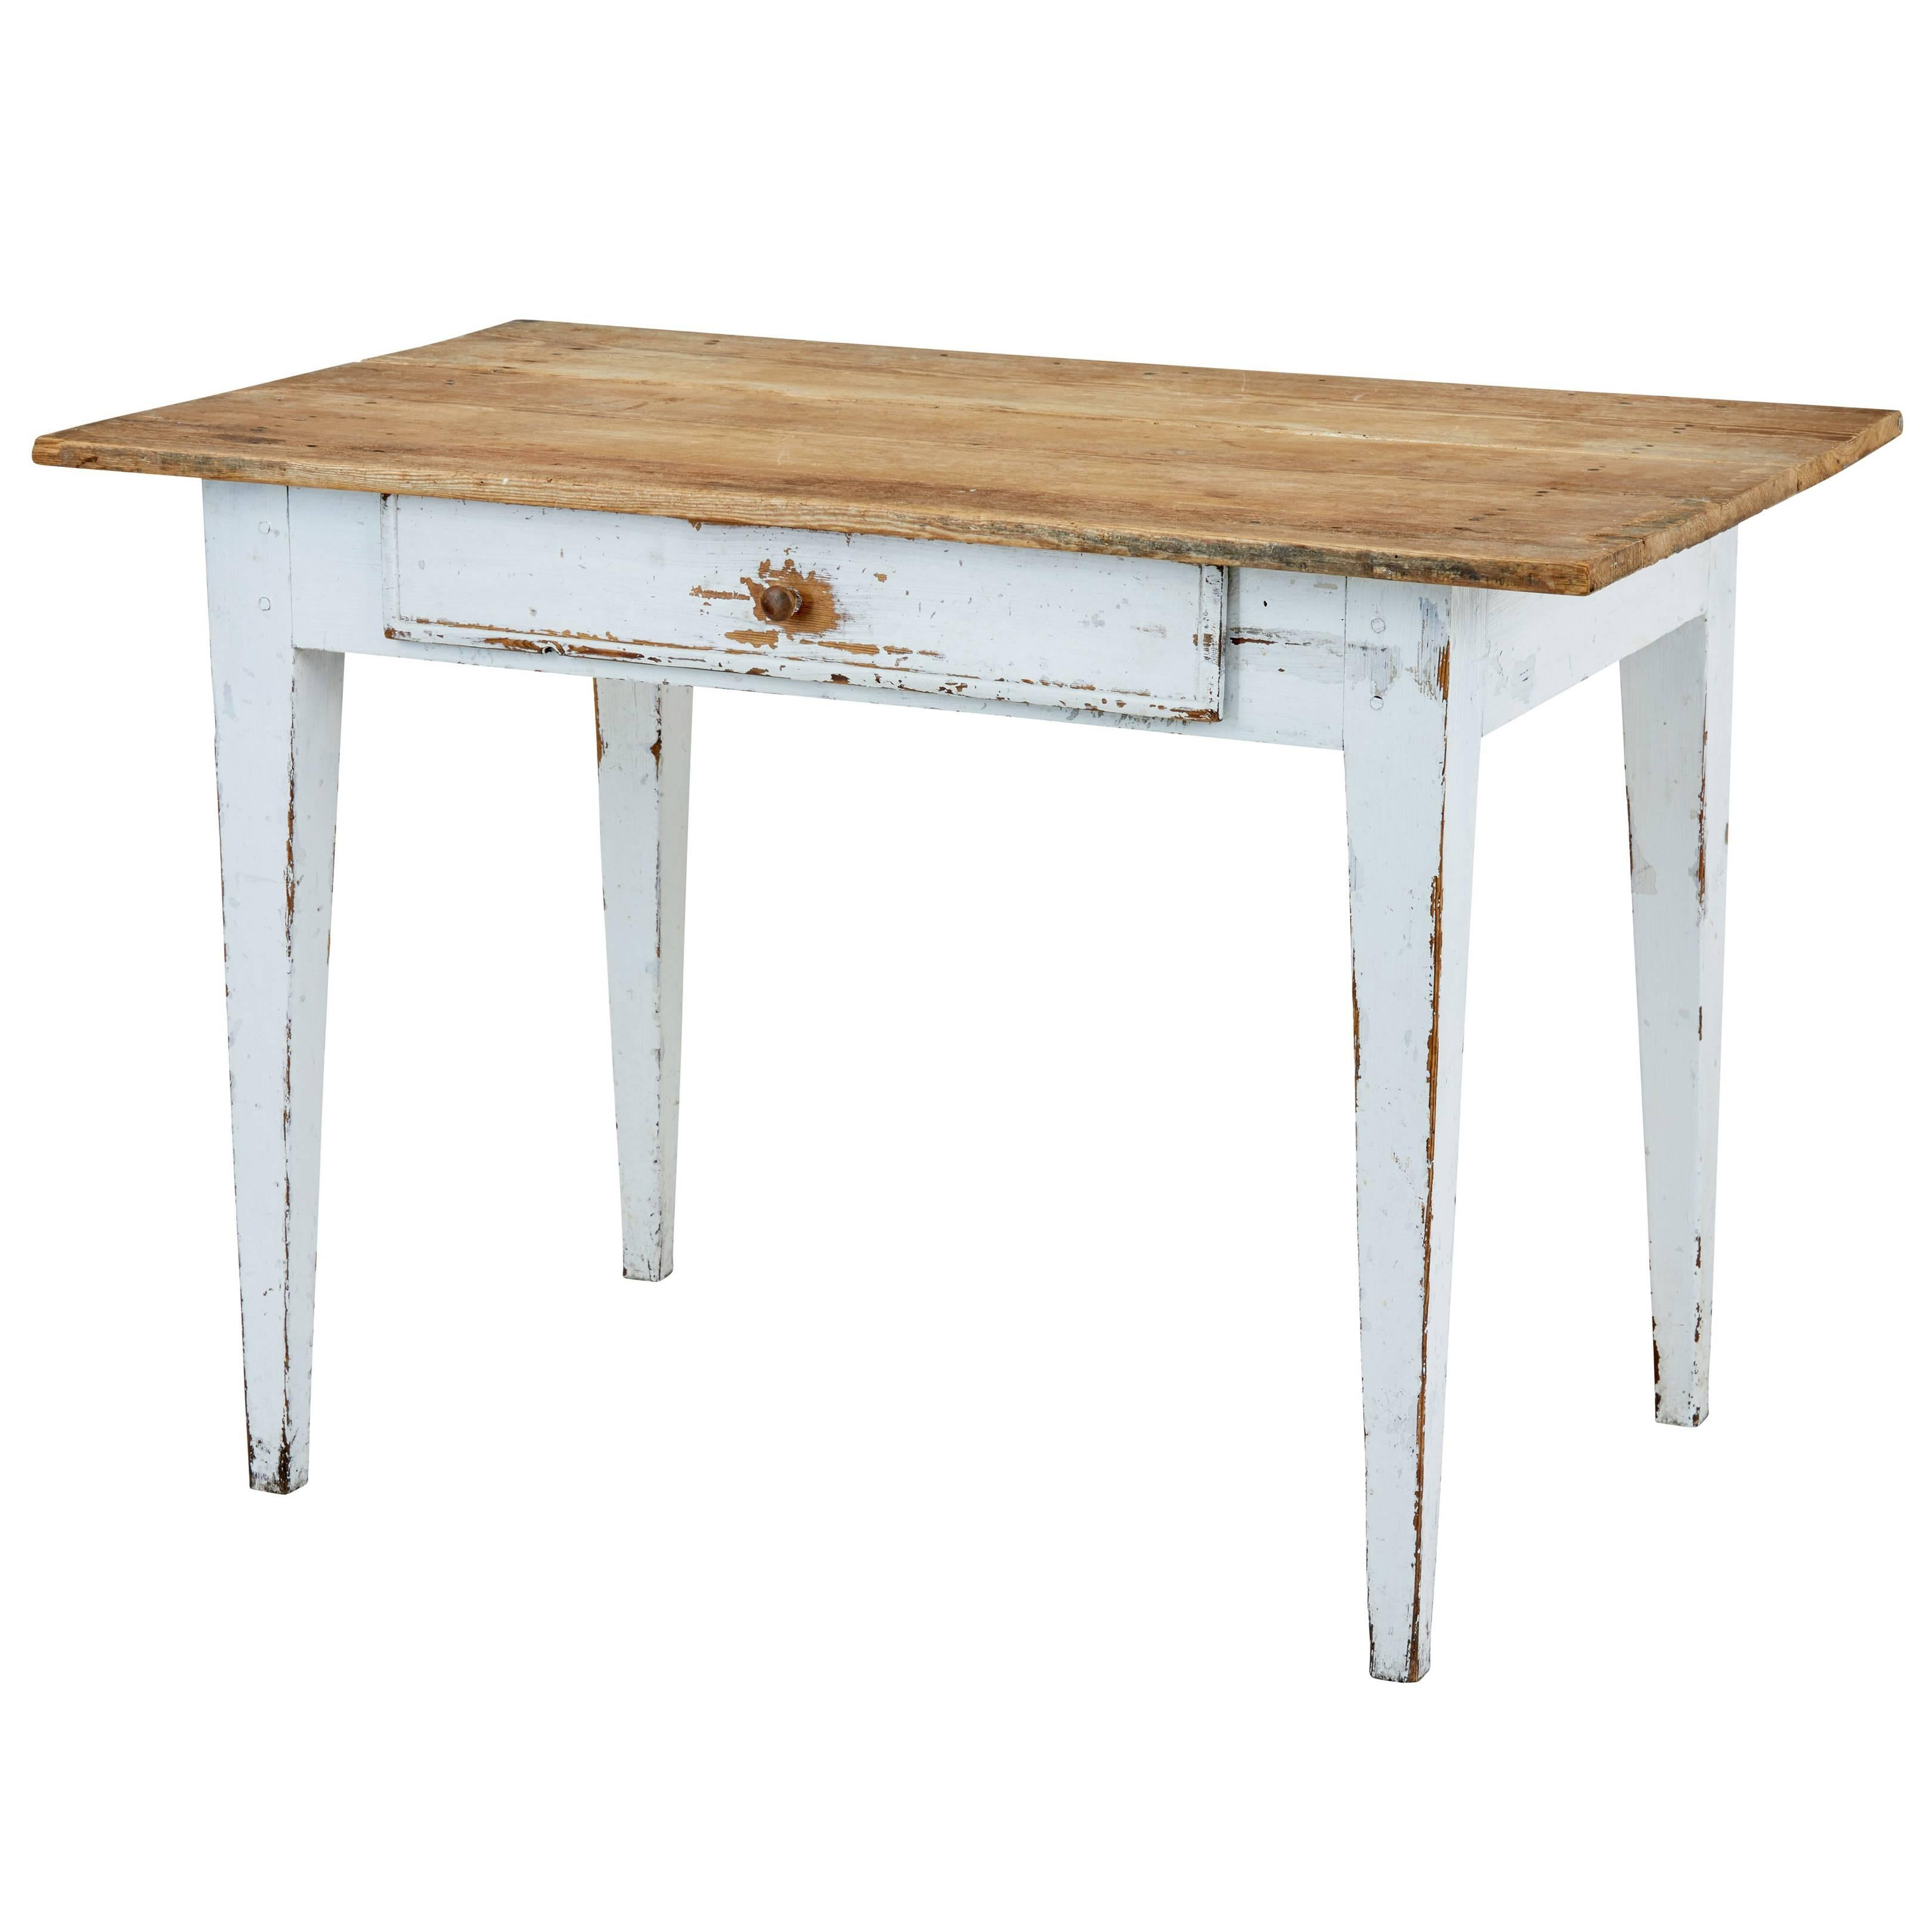 19th century swedish pine kitchen table antique and vintage farm tables   648 for sale at 1stdibs  rh   1stdibs com